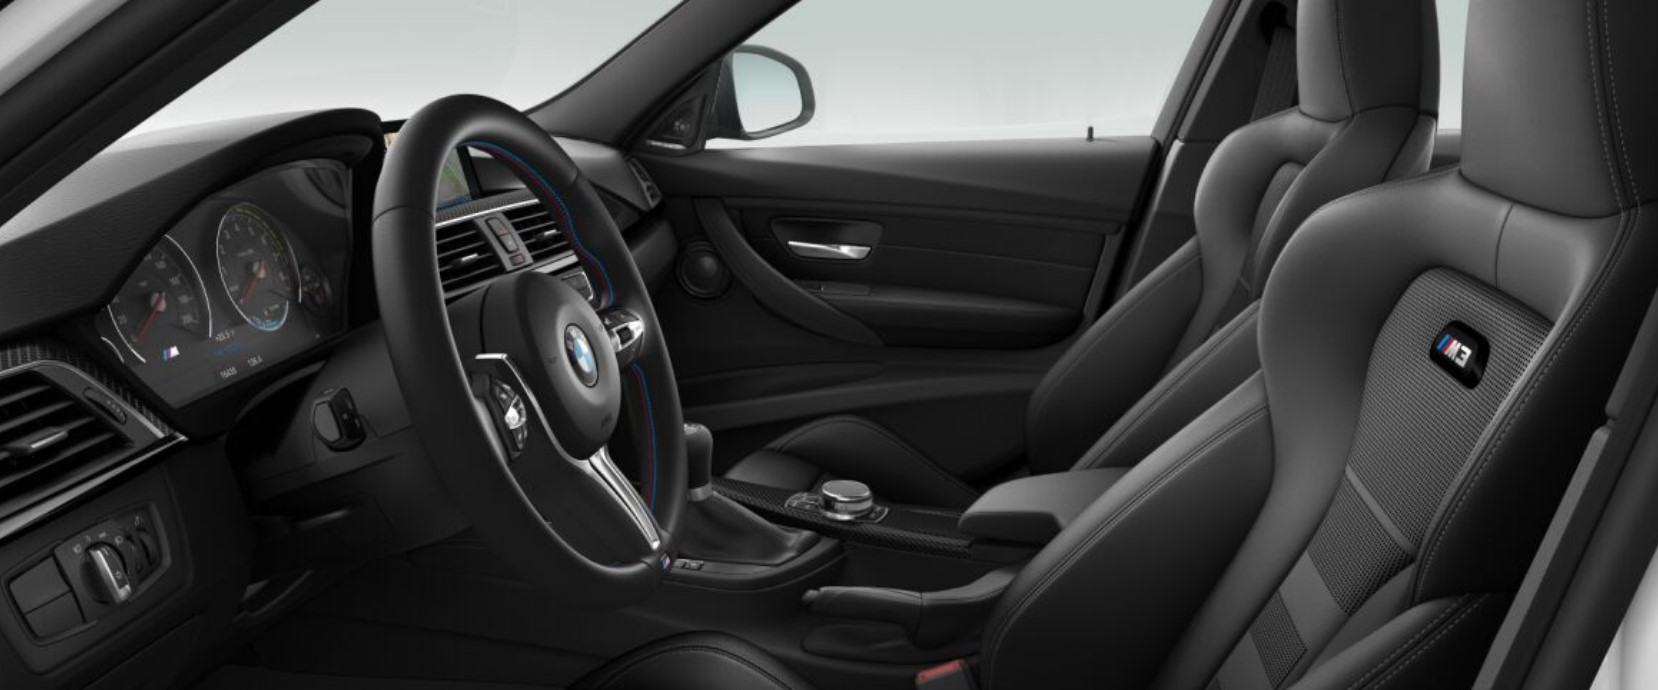 2018 BMW M3 Black Leather Interior